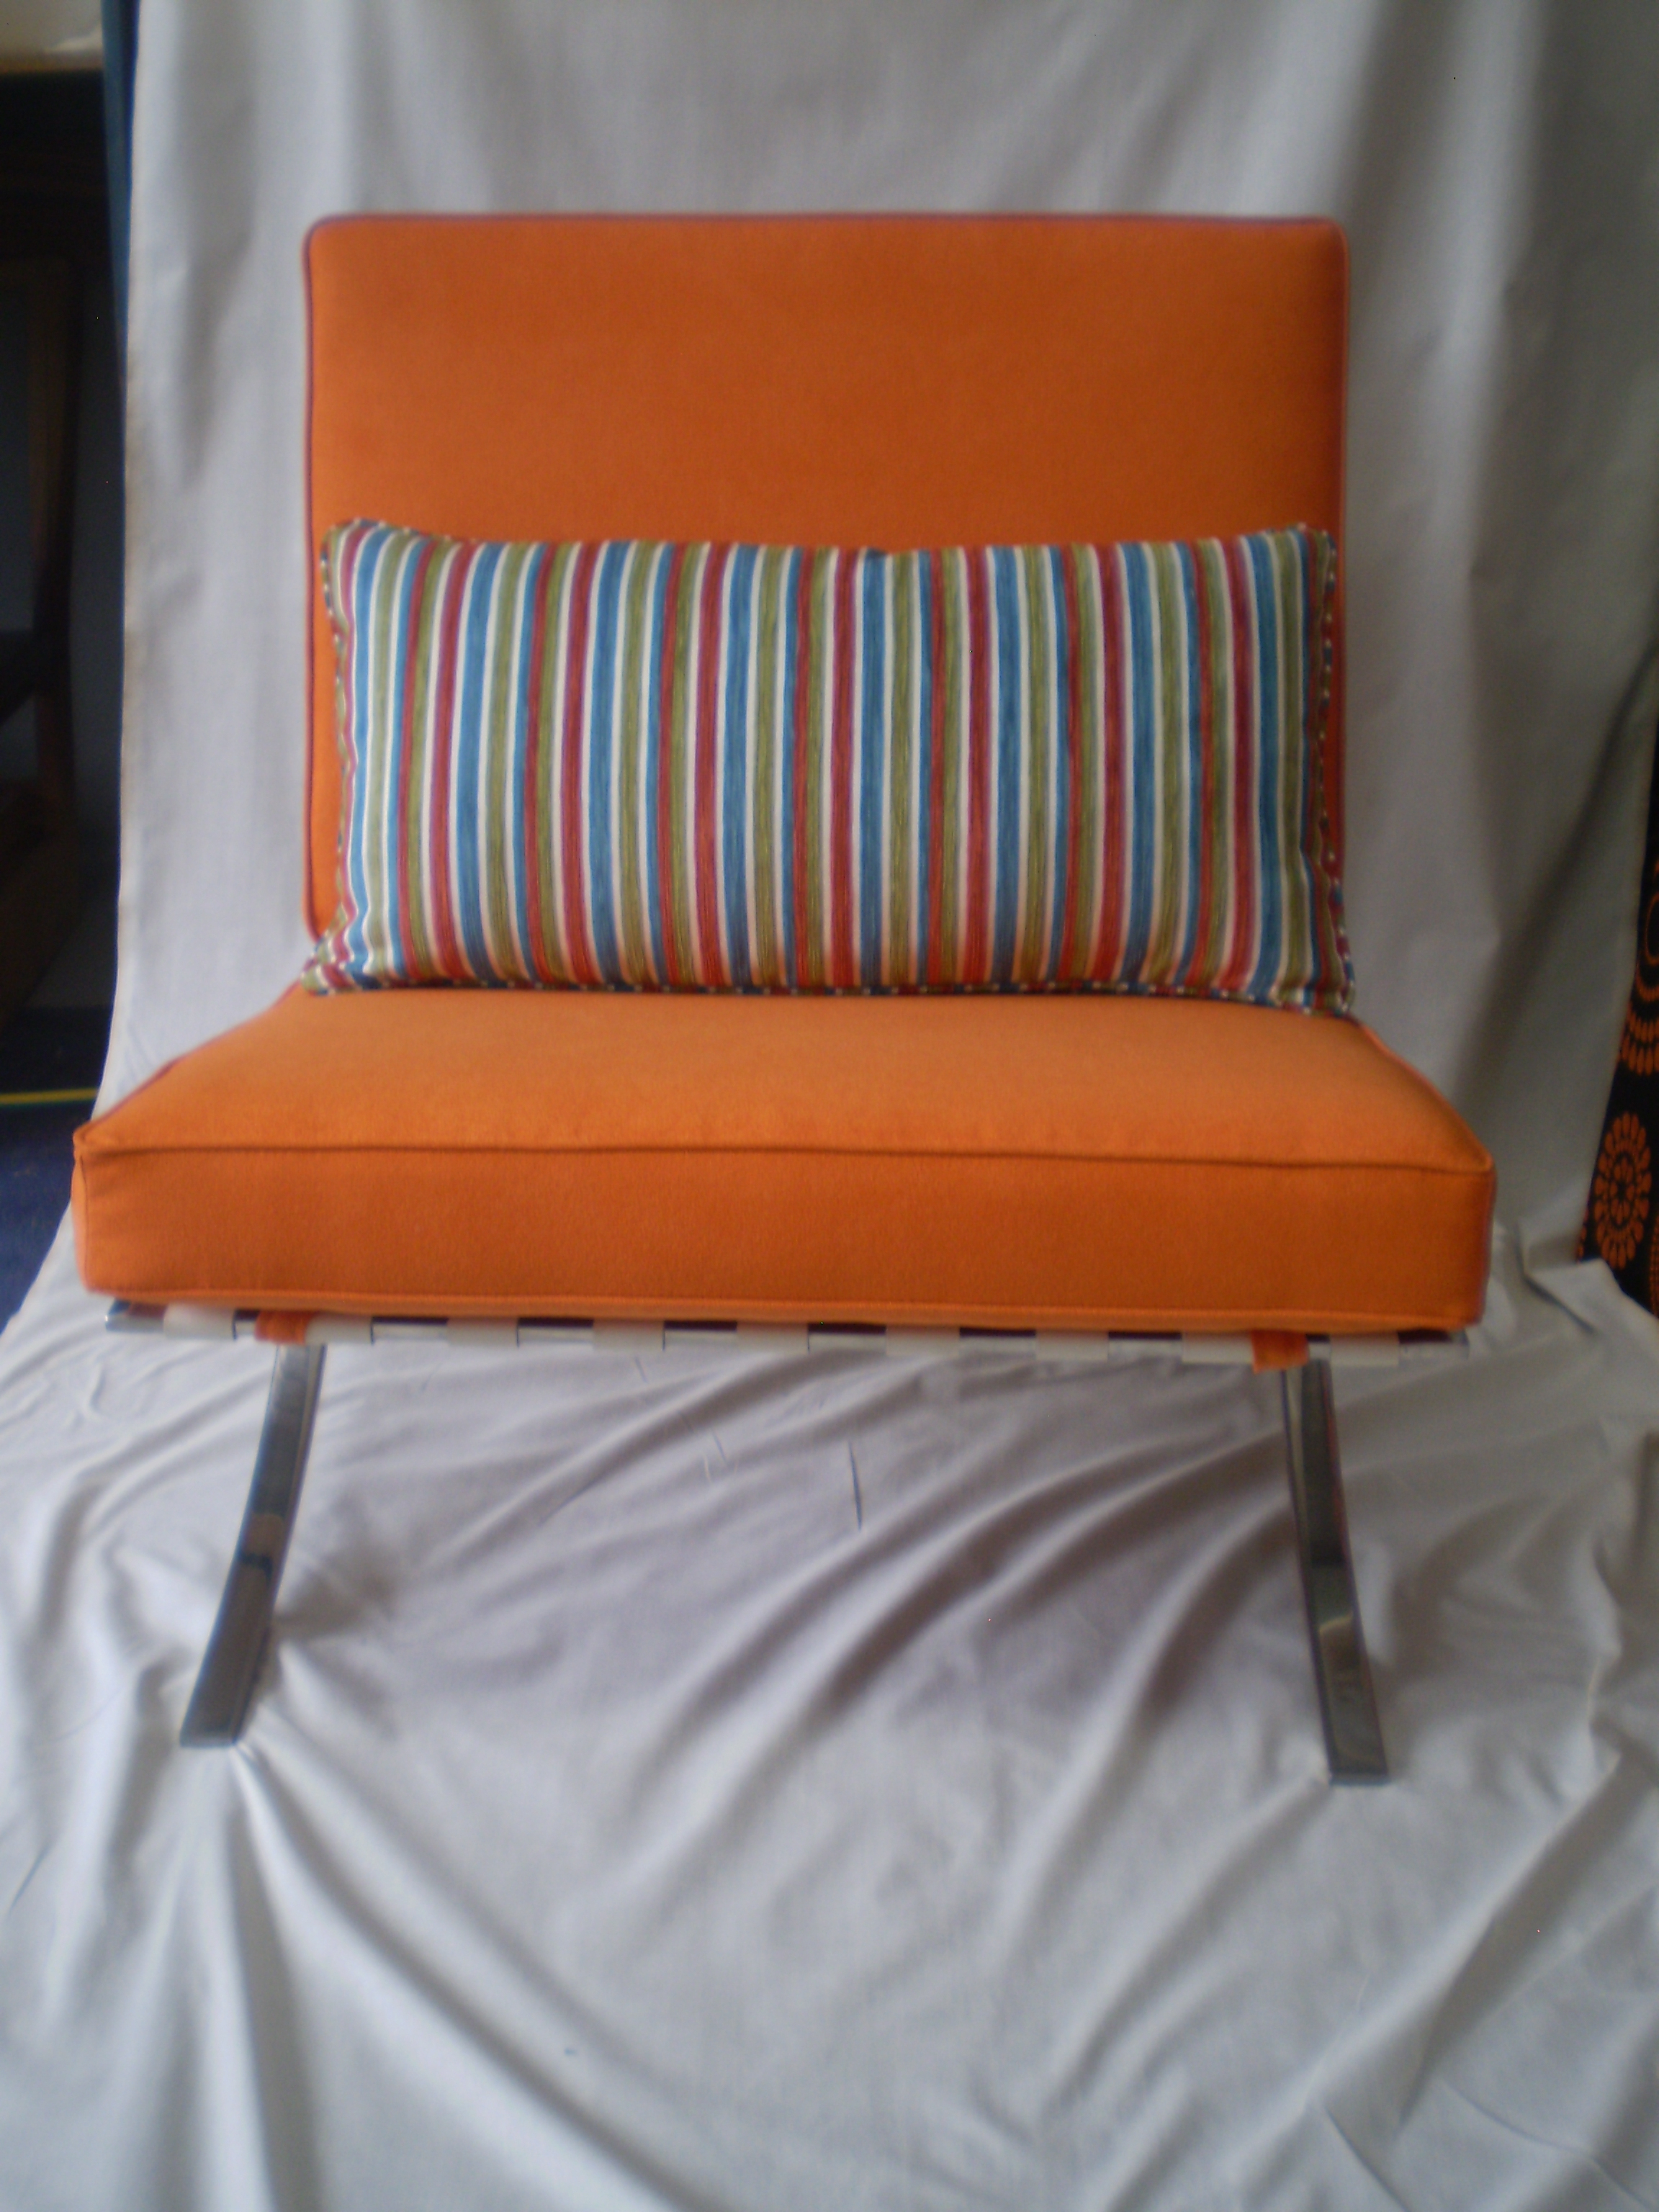 Barcelona Chair Reupholstered By Jaro Upholstery